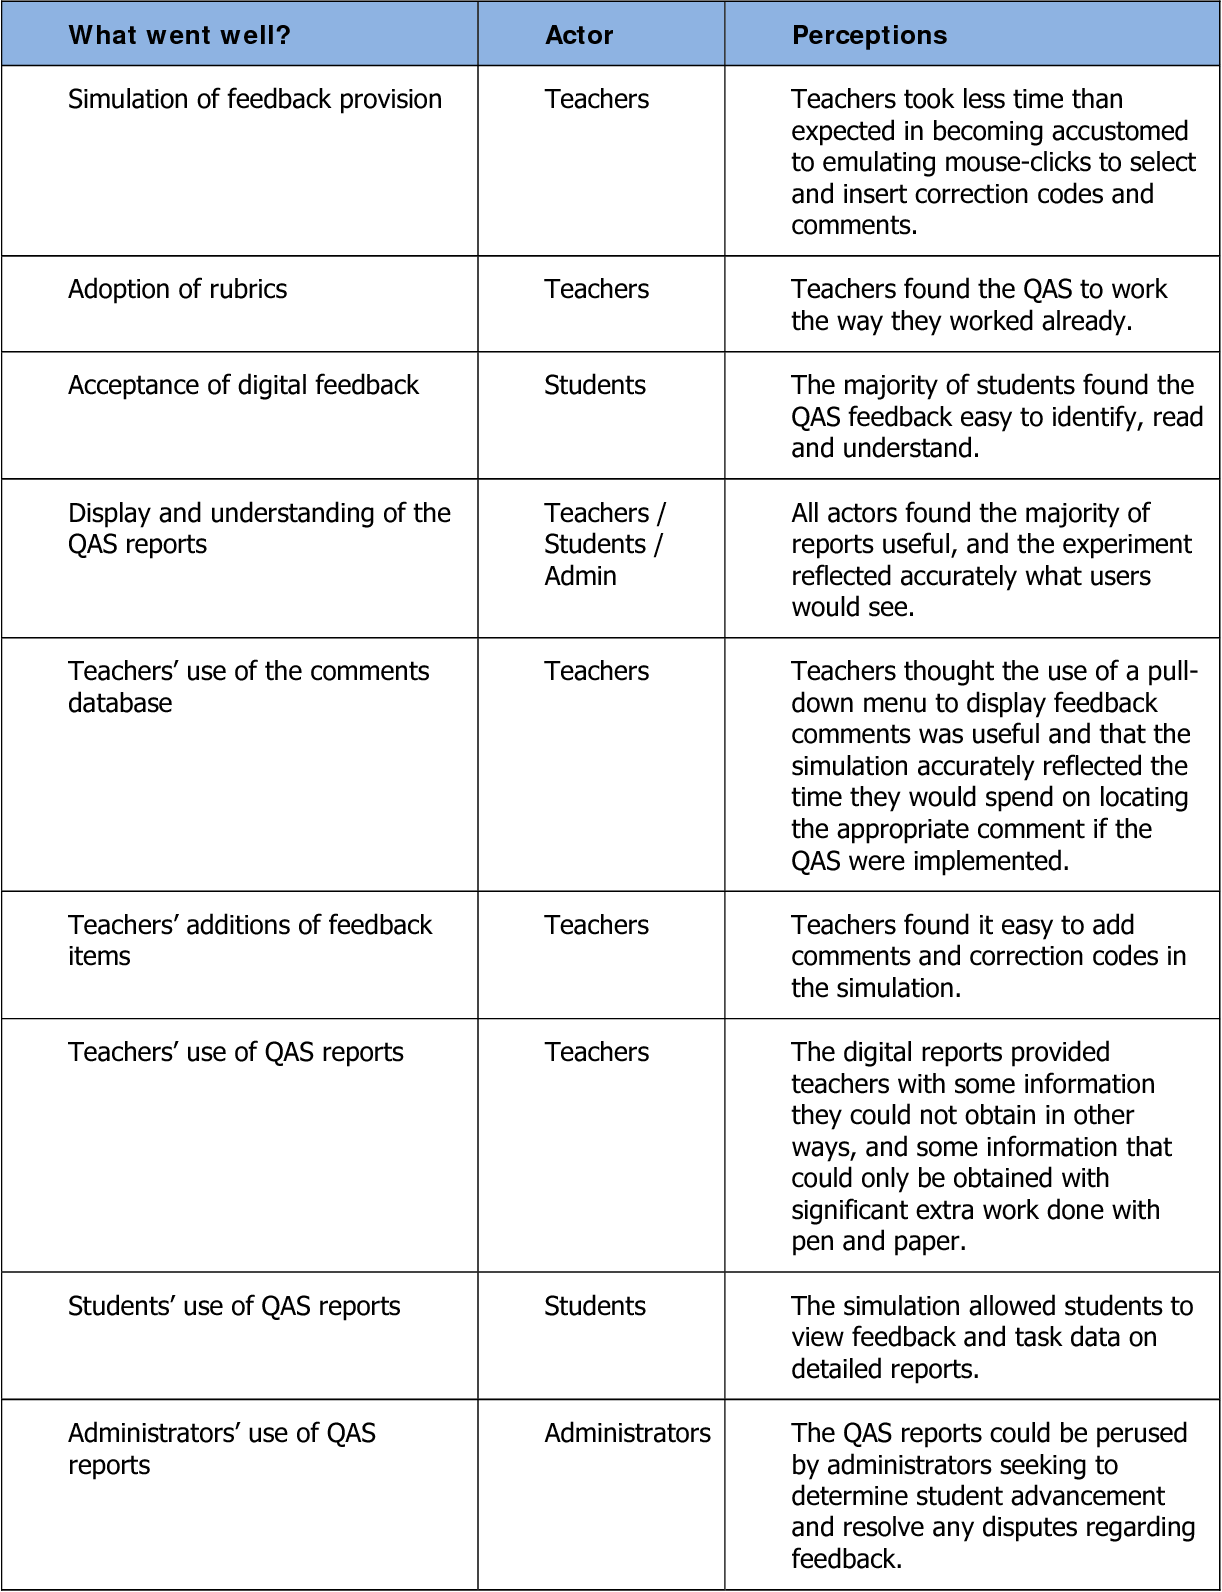 PDF] Providing computer-assisted, two-way feedback in formative